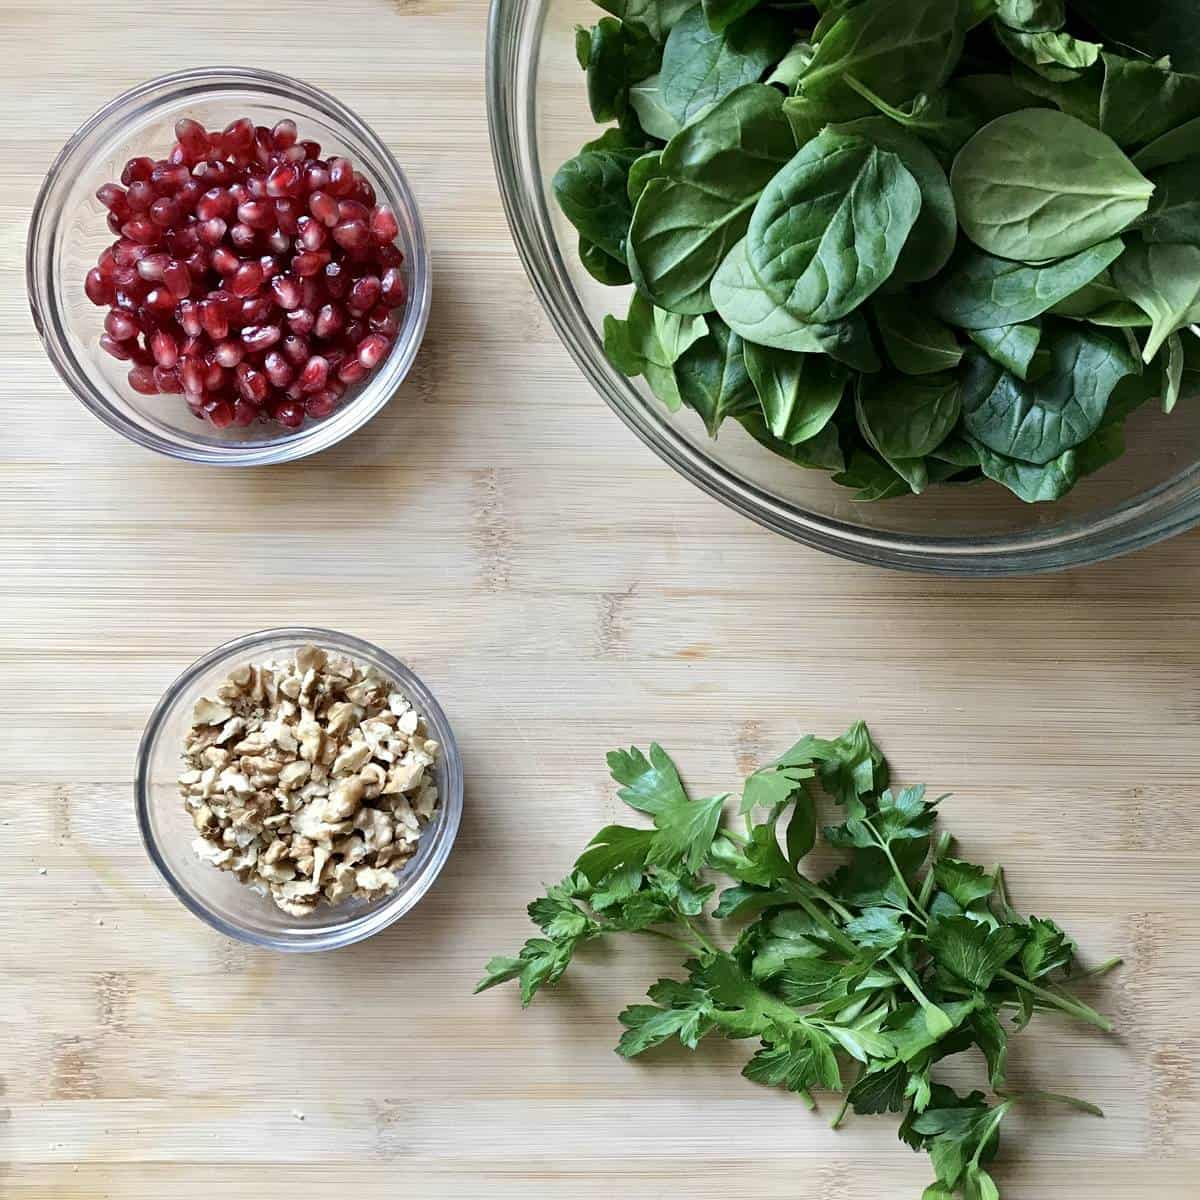 Spinach, parsley, walnuts and pomegrante arils on a wooden board.